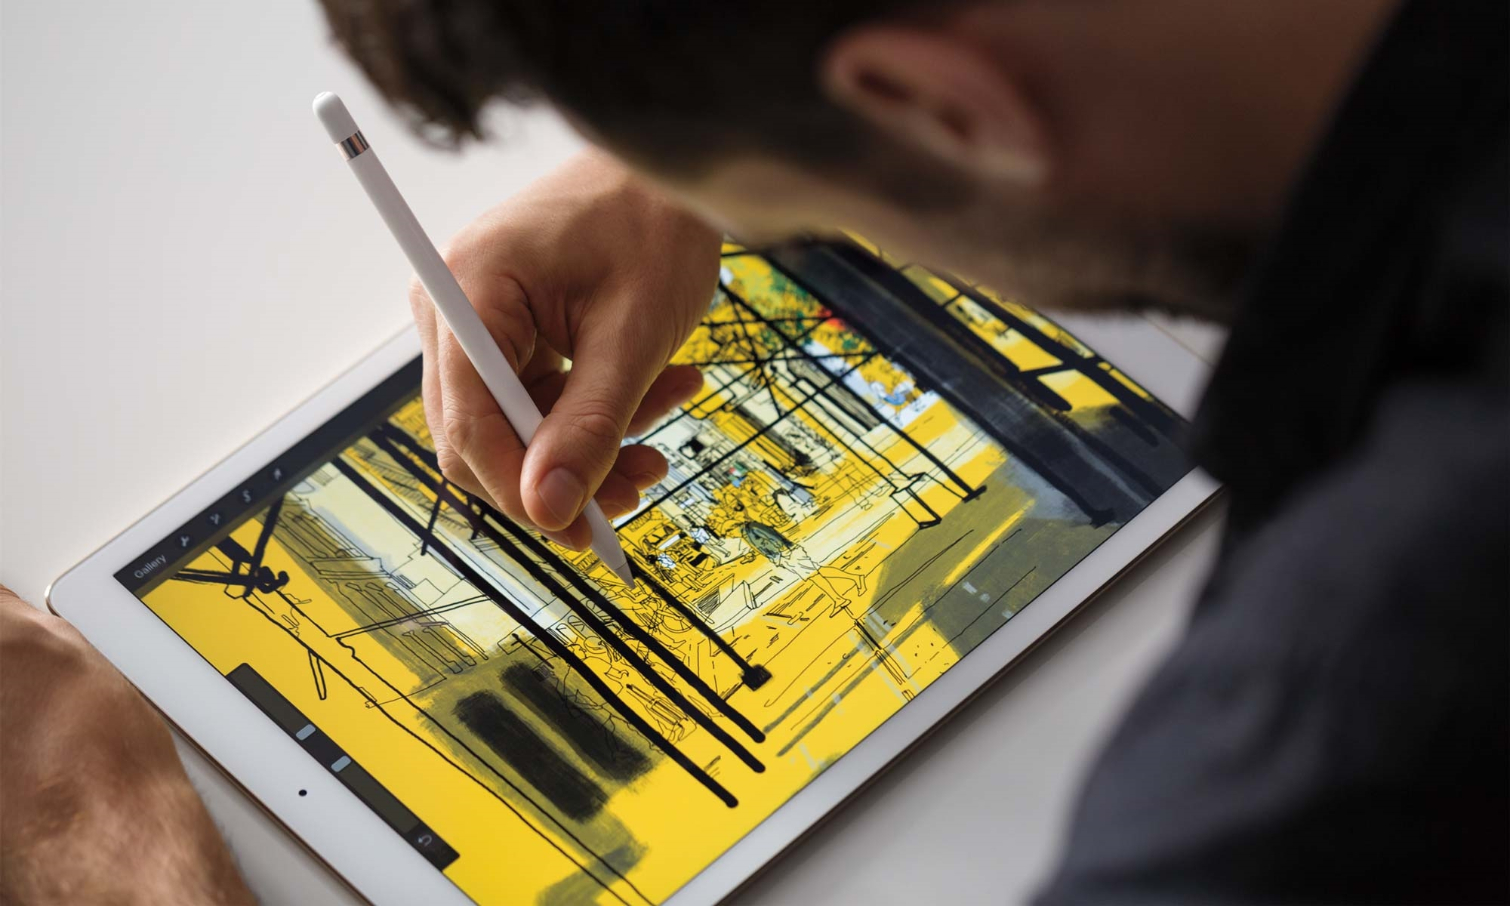 Best Drawing and Art Apps 2019 - Top Apps for Android